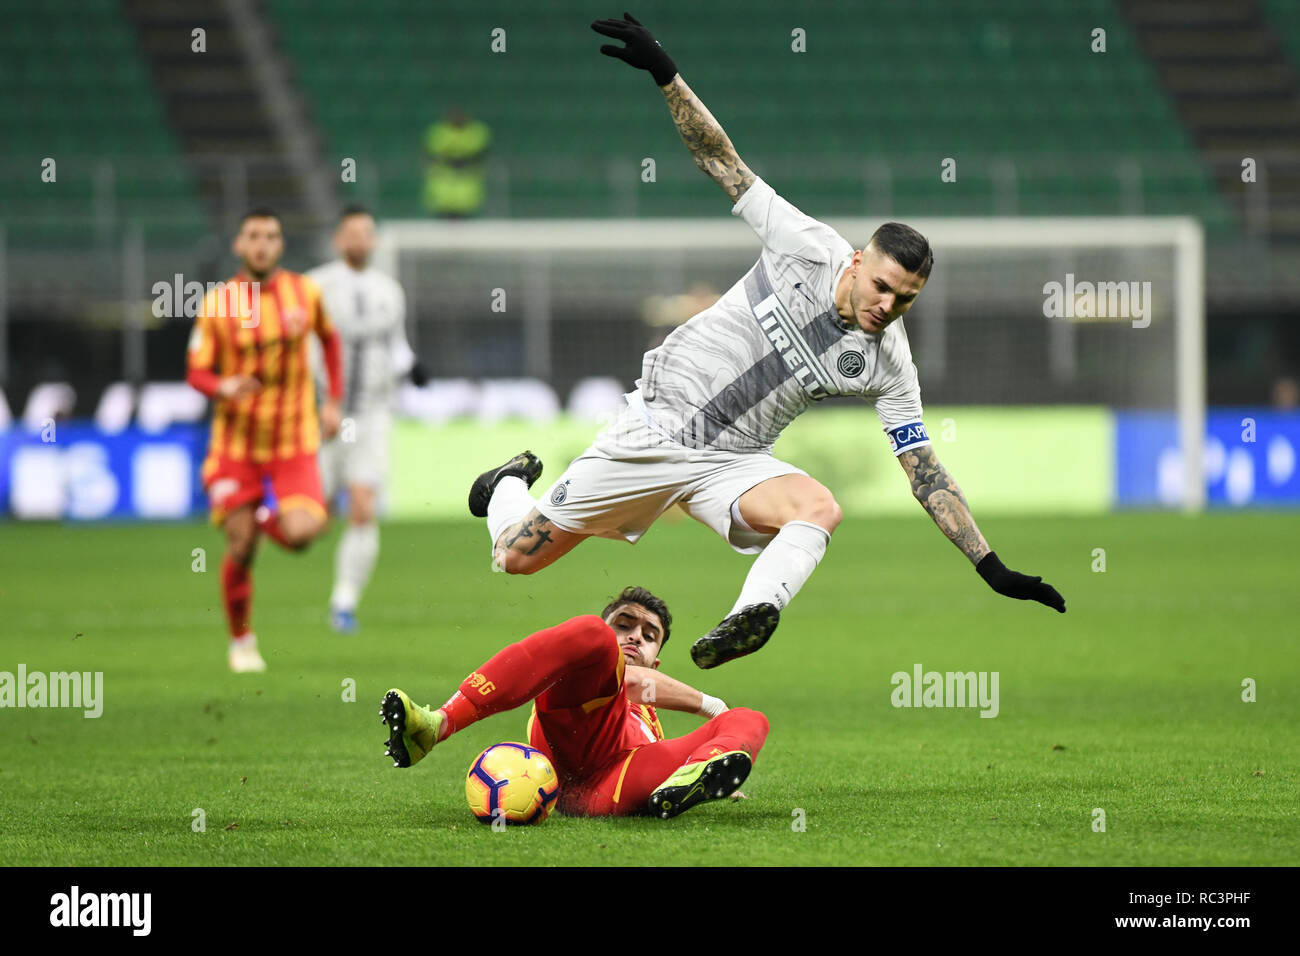 Milan, Italy. 13th Jan 2019. Forward Mauro Icardi (Inter) during the Italian Cup 'Coppa Italia' football match, Inter Milan vs Benevento Calcio at San Siro Meazza Stadium in Milan, Italy on 13 January 2019. The football match is played behind closed doors after Napoli's Senegalese player Kalidou Koulibaly was subject to racist chants by FC Internazionale's 'ultra' fans during the Boxing Day match. Credit: Piero Cruciatti/Alamy Live News - Stock Image